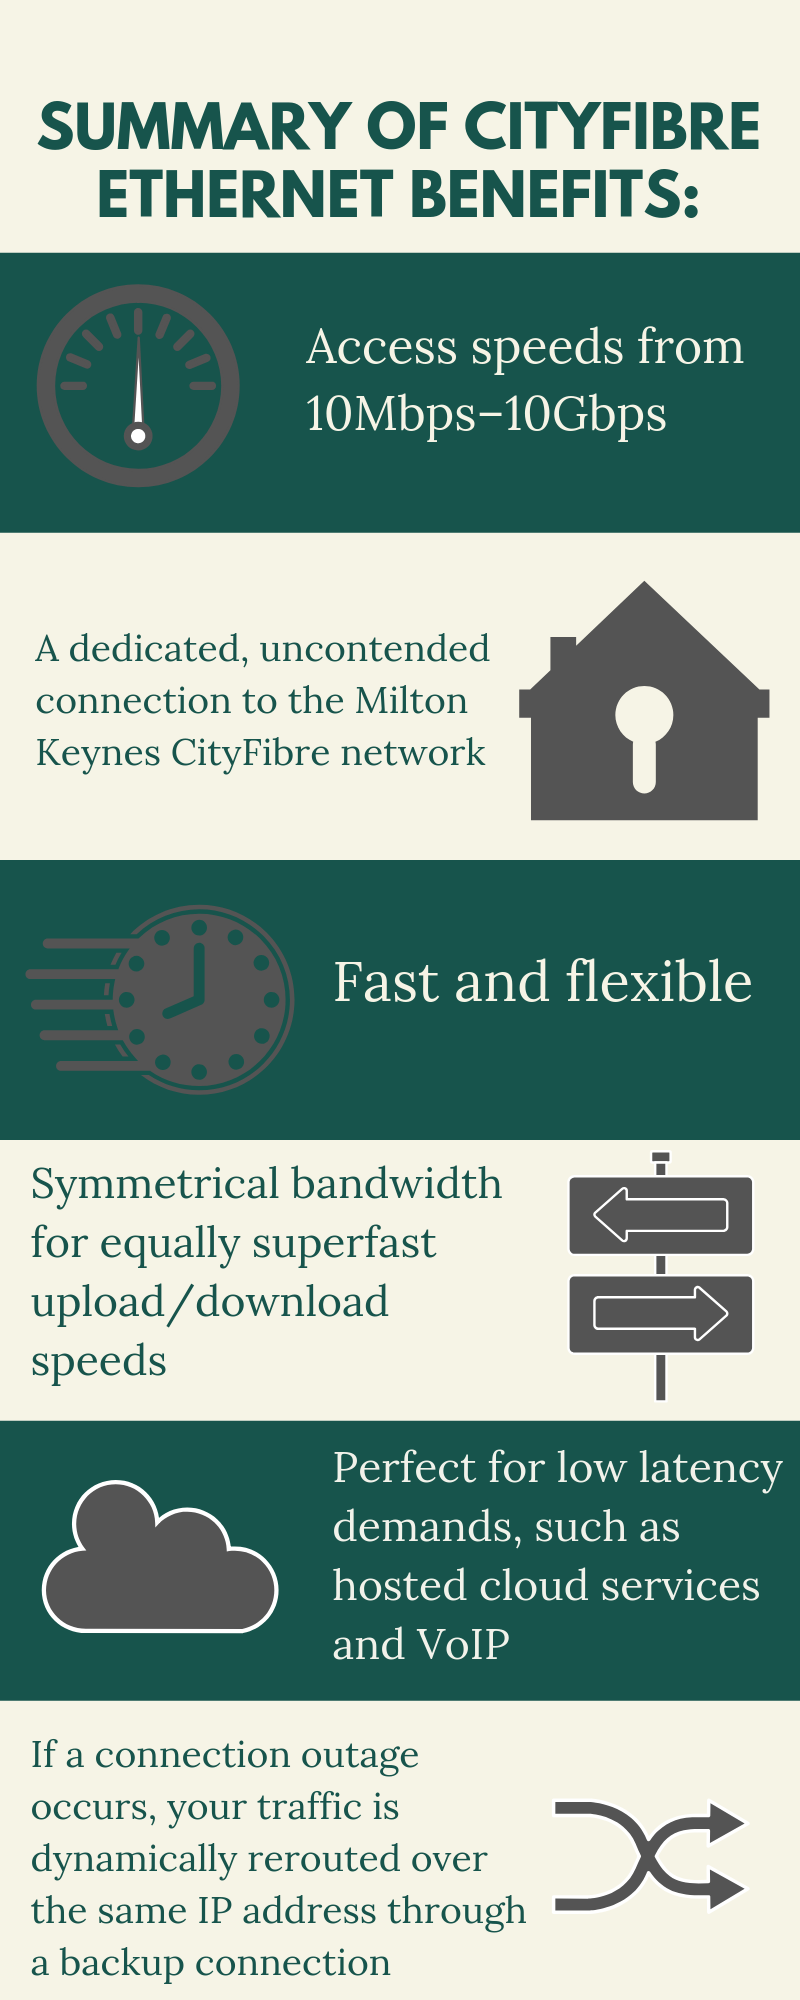 CityFibre Ethernet benefits